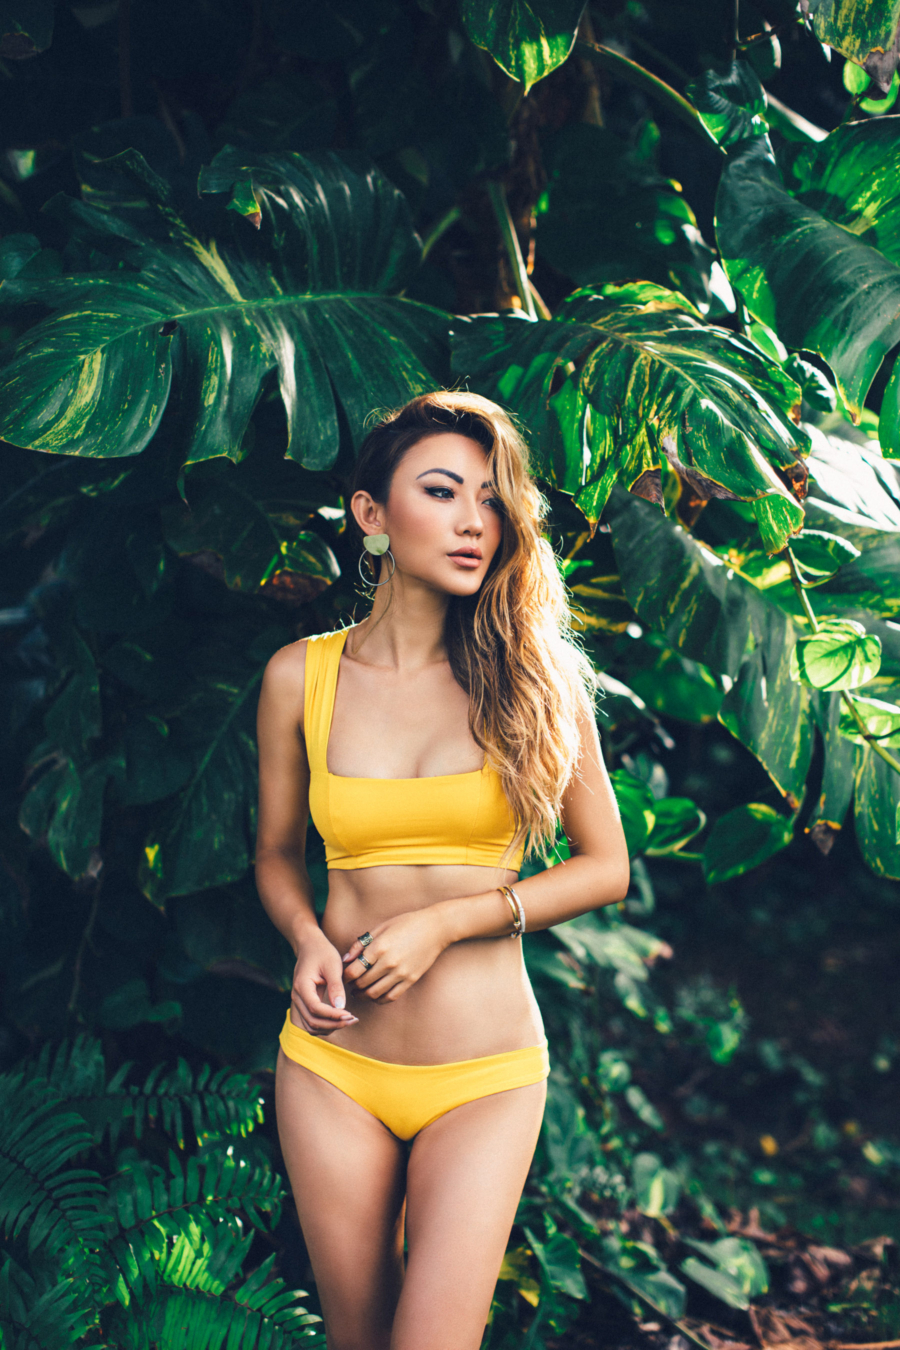 Crop Tops for Summer - Minimalist Bikini Top // Notjessfashion.com